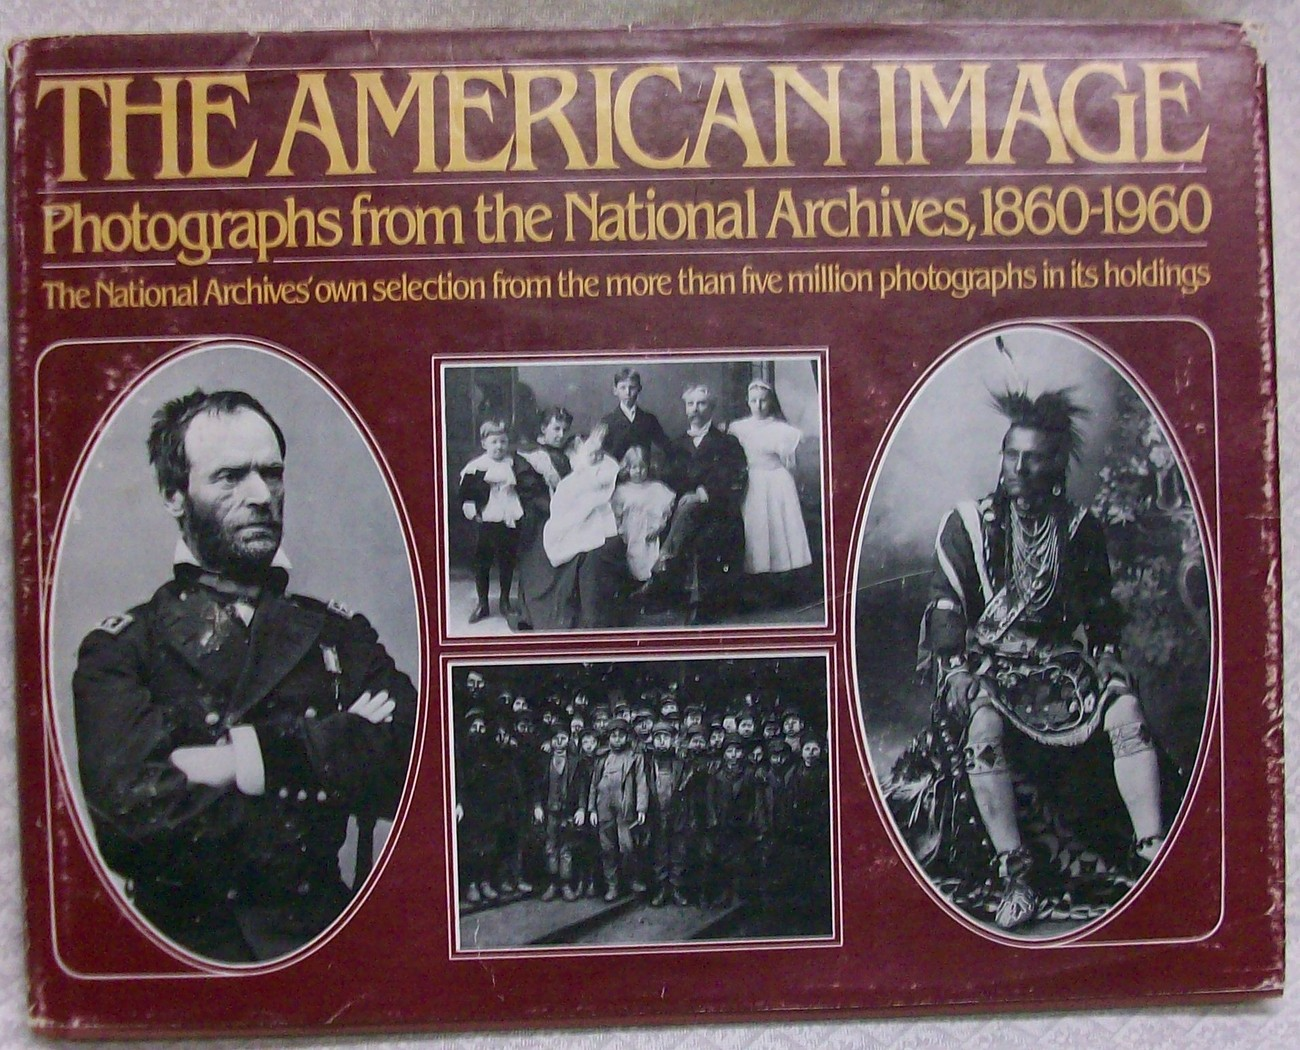 The American Image 1860-1960